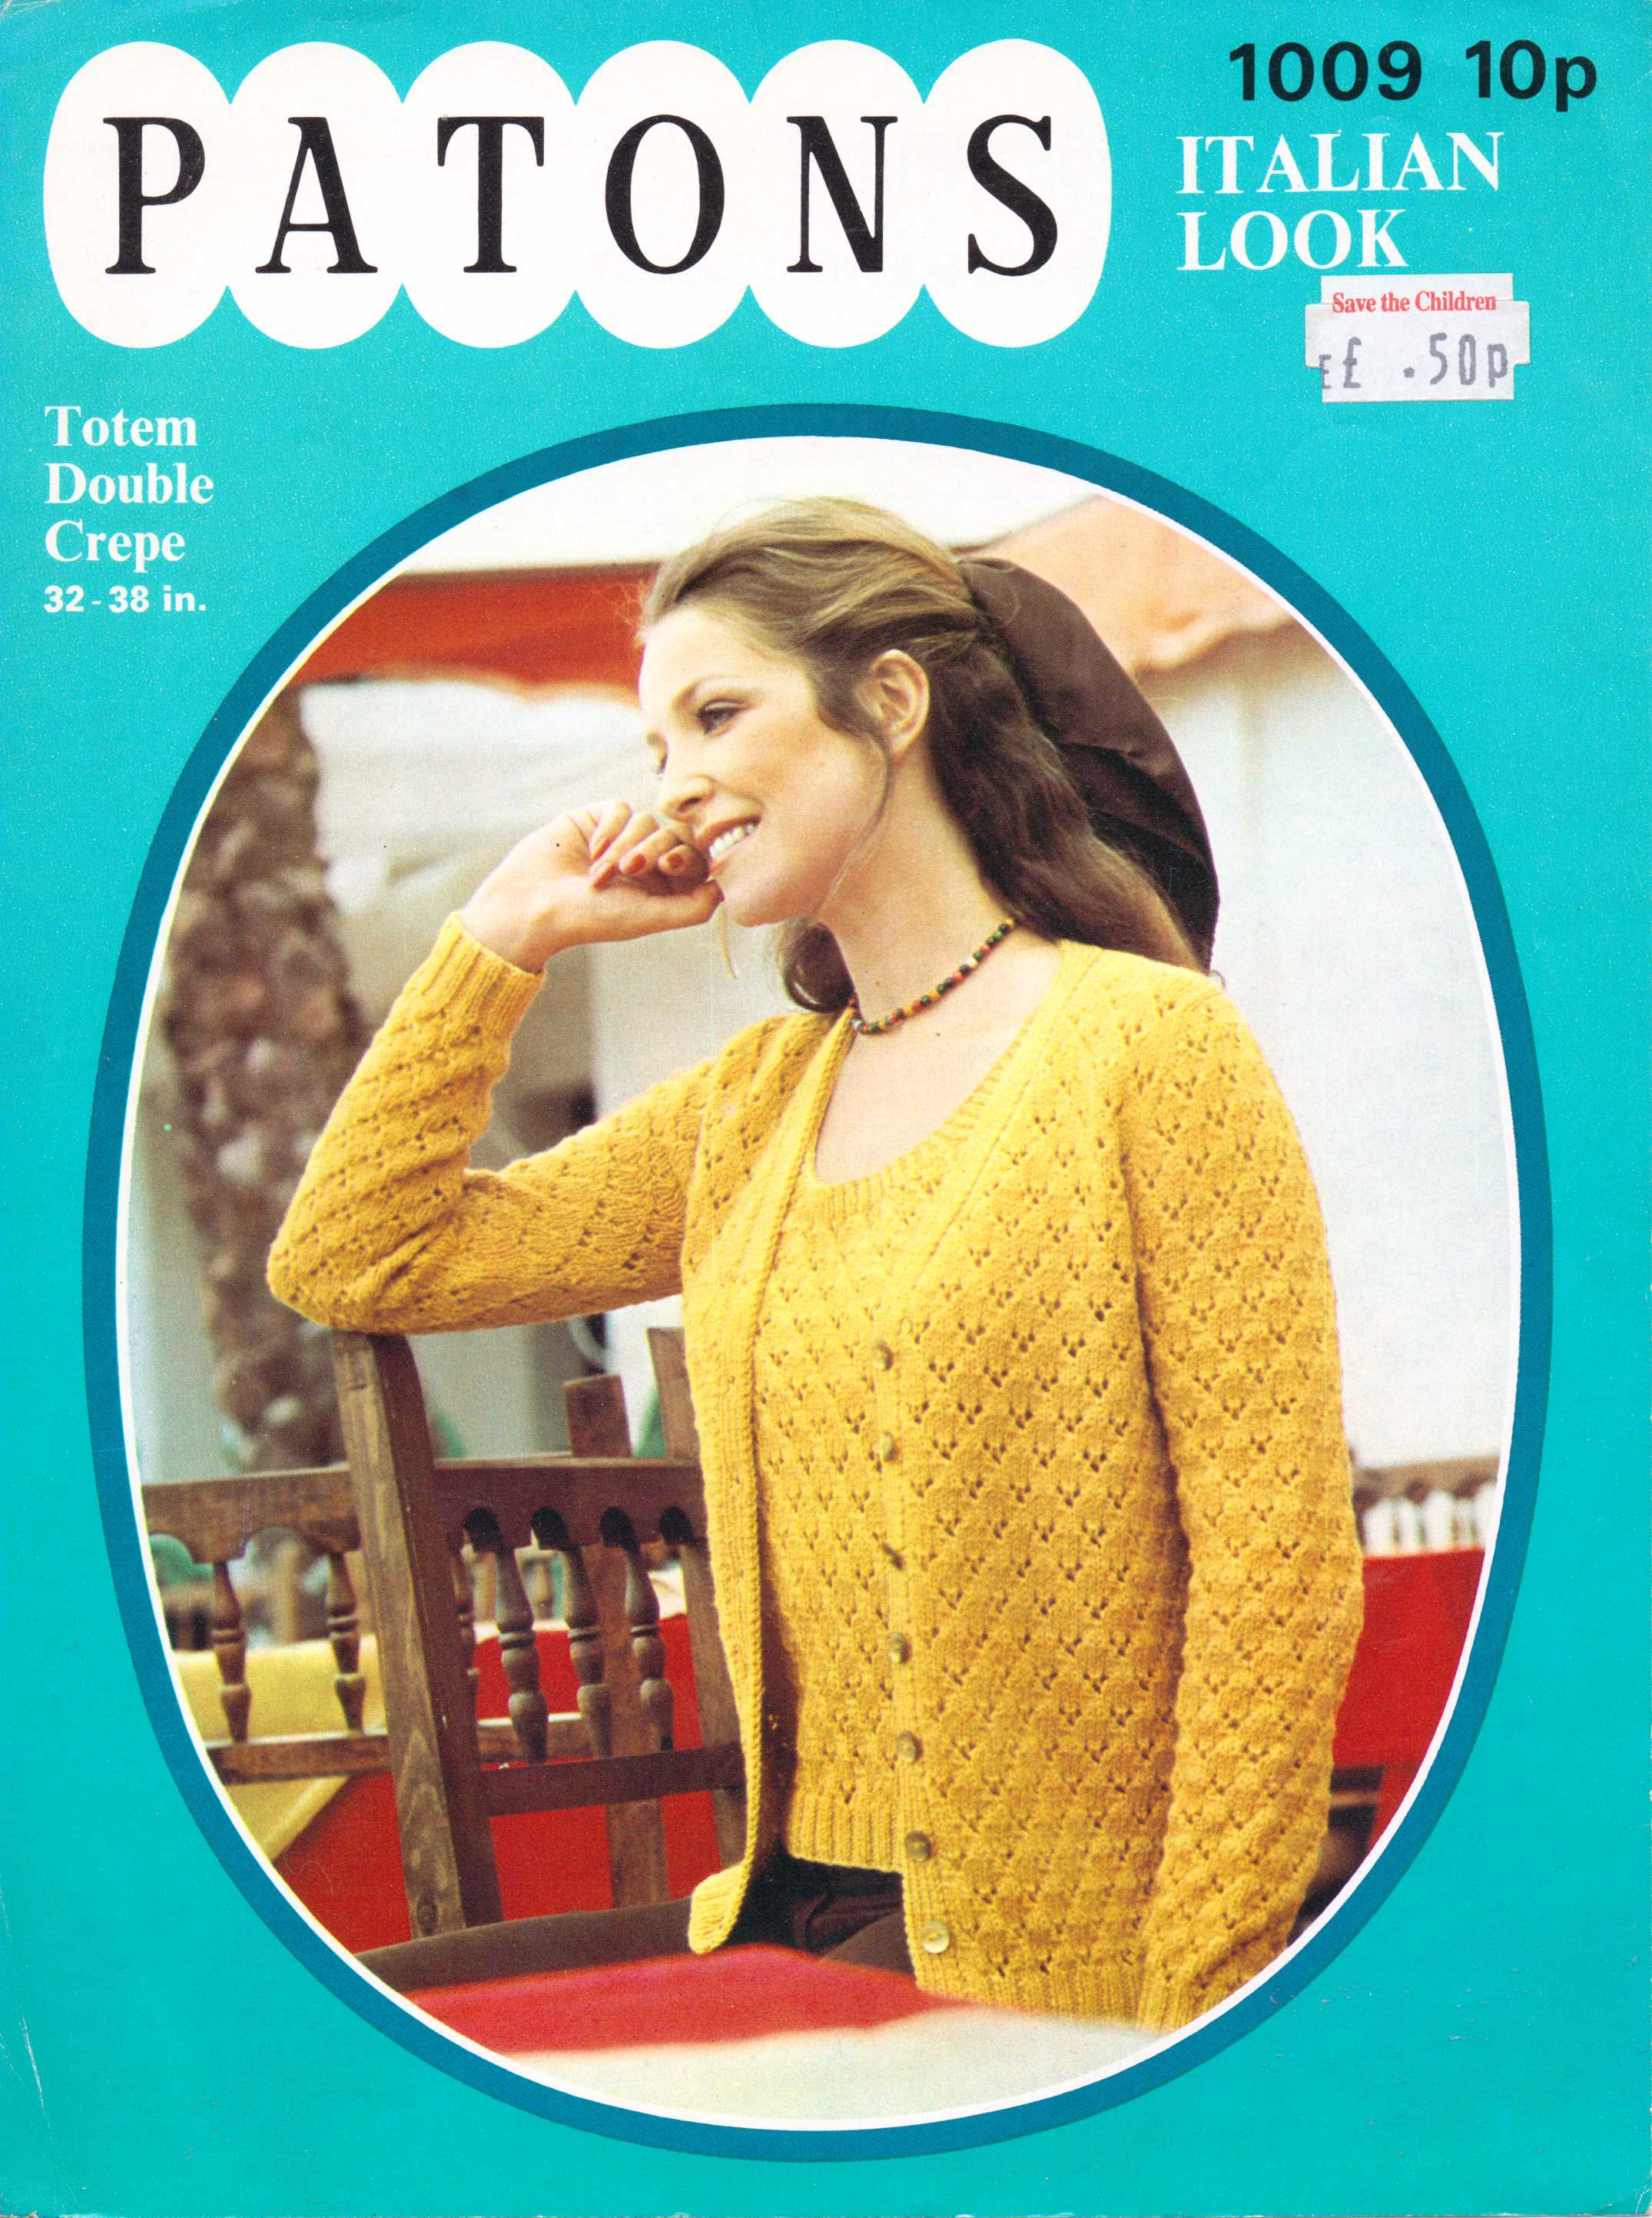 Patons 1009 Vintage Knitting Pattern Archive